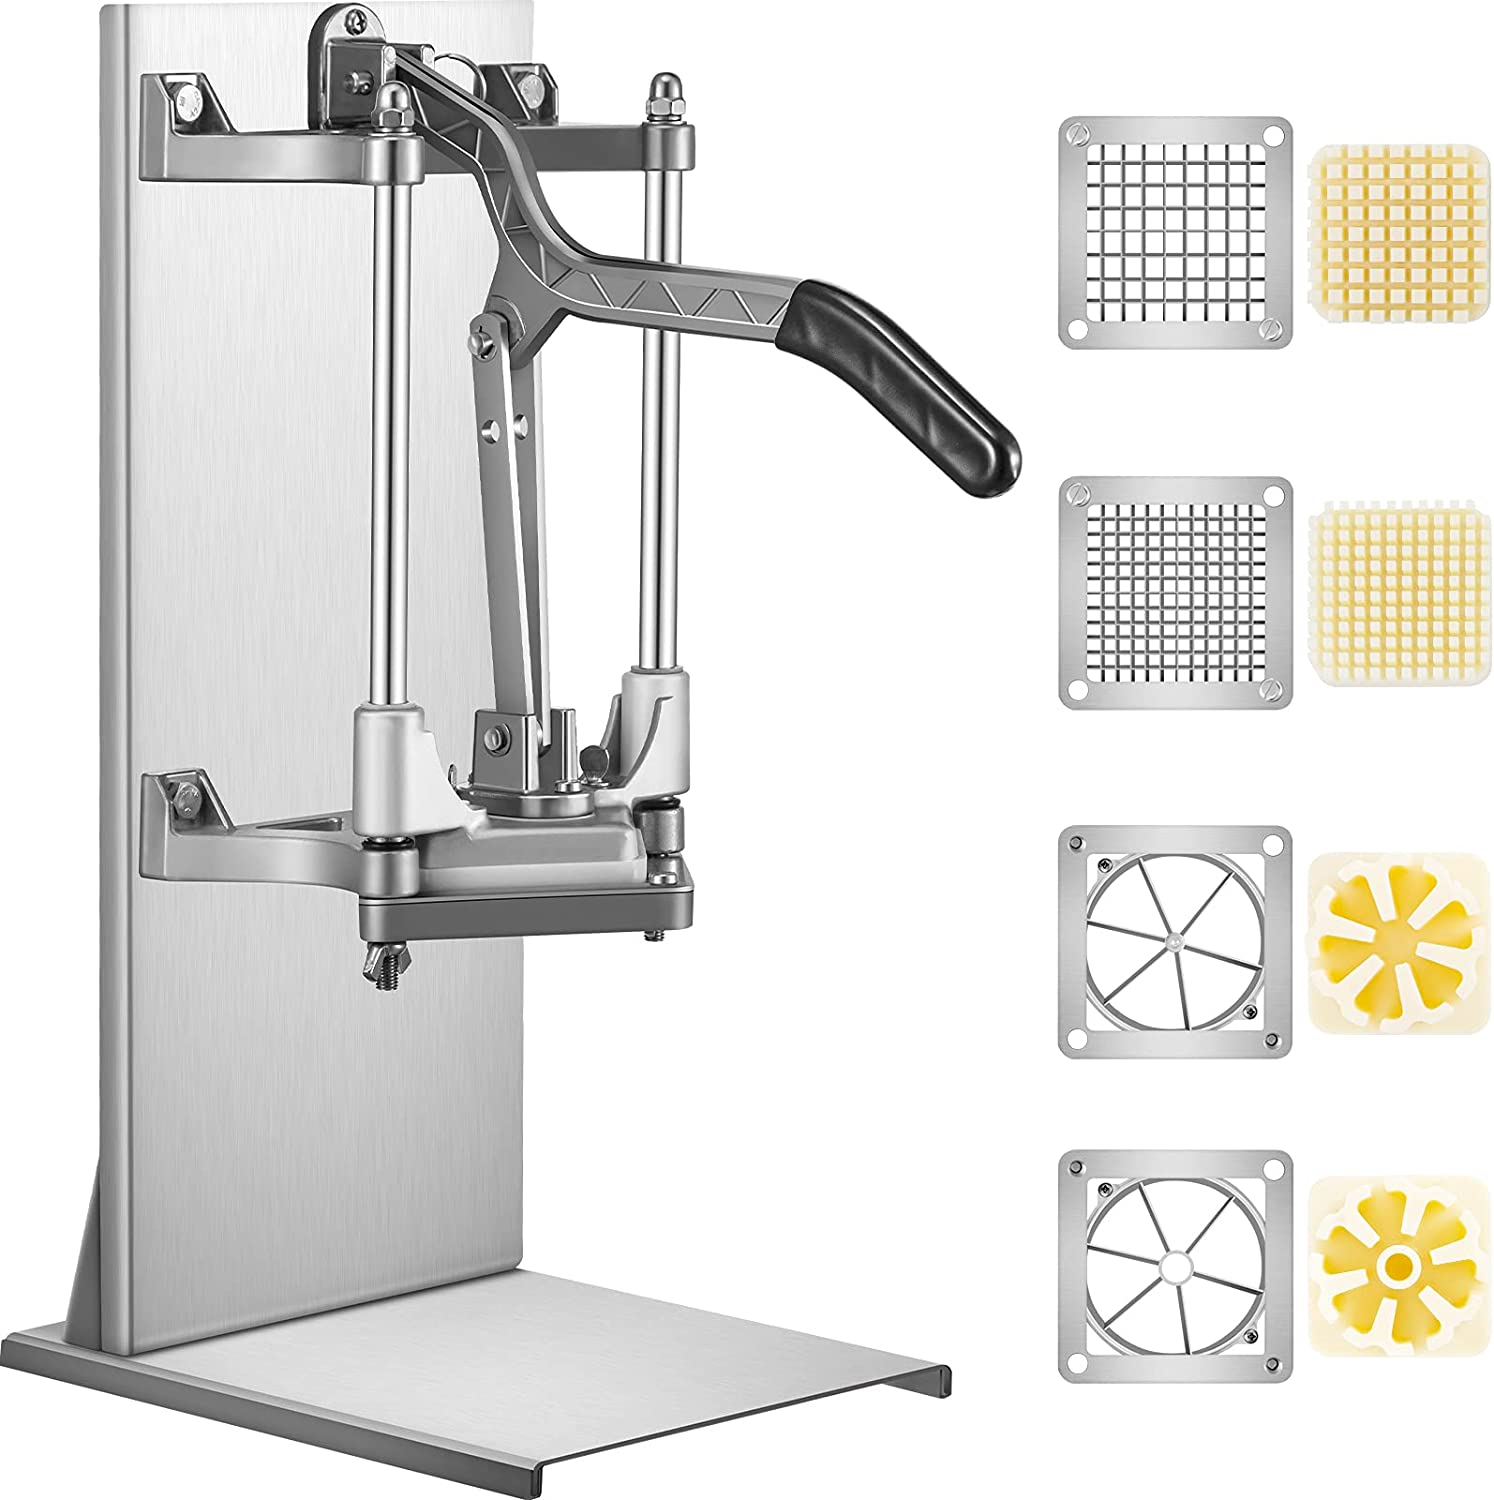 VEVOR Commercial French Fry Cutter with 4 Replacement Blades, 1/4 and 3/8 Blade Easy Dicer Chopper, 6-wedge Slicer and 6-wedge Apple Corer, Lemon Potato Cutter for French Fries with Extended Handle